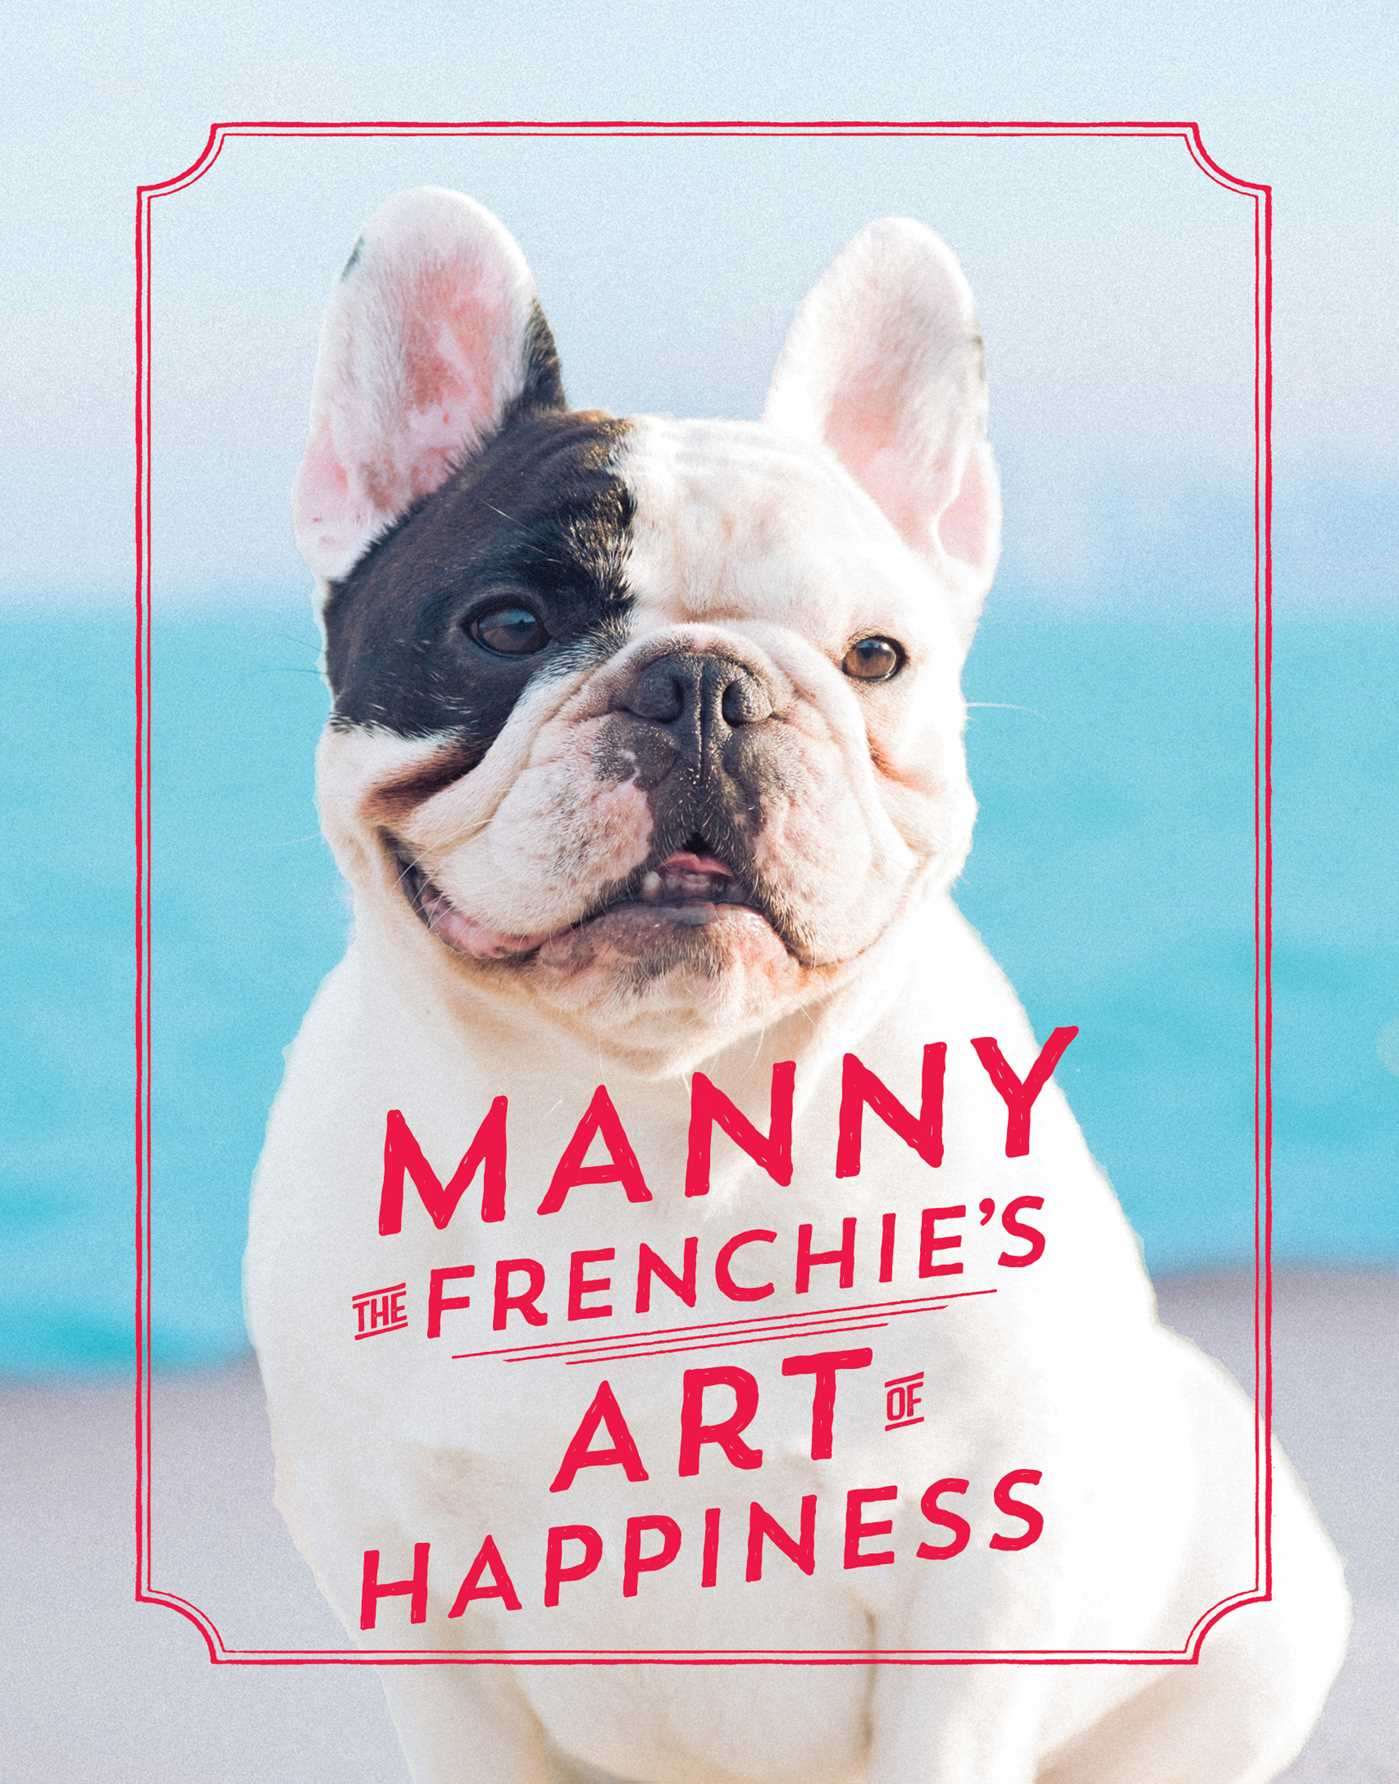 Manny the frenchies art of happiness 9781501158292 hr